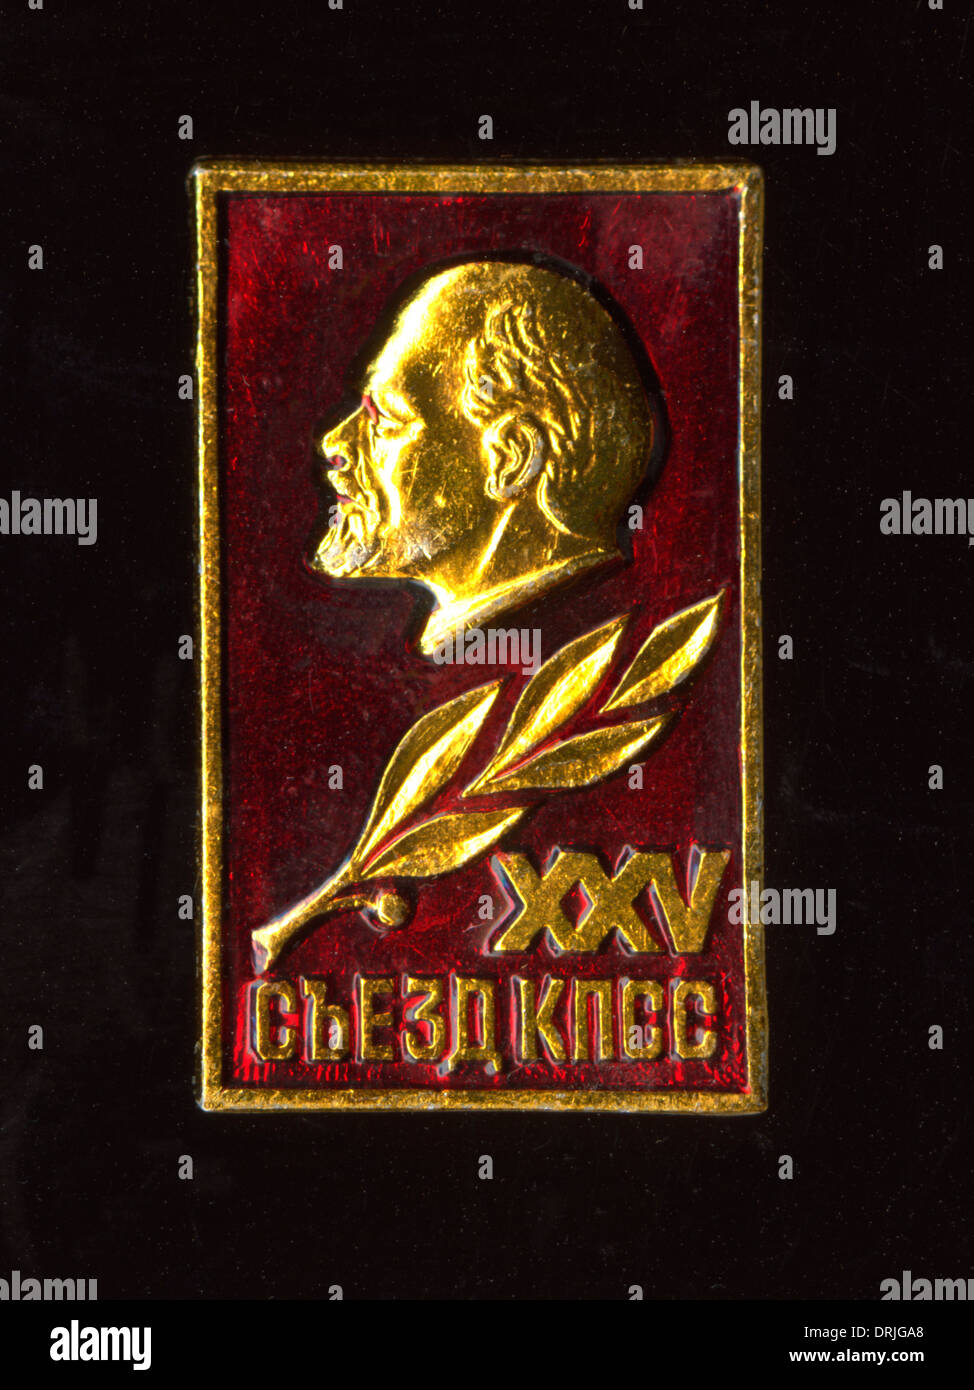 Badge, 25th Congress of CPSU, Moscow, Russia - Stock Image